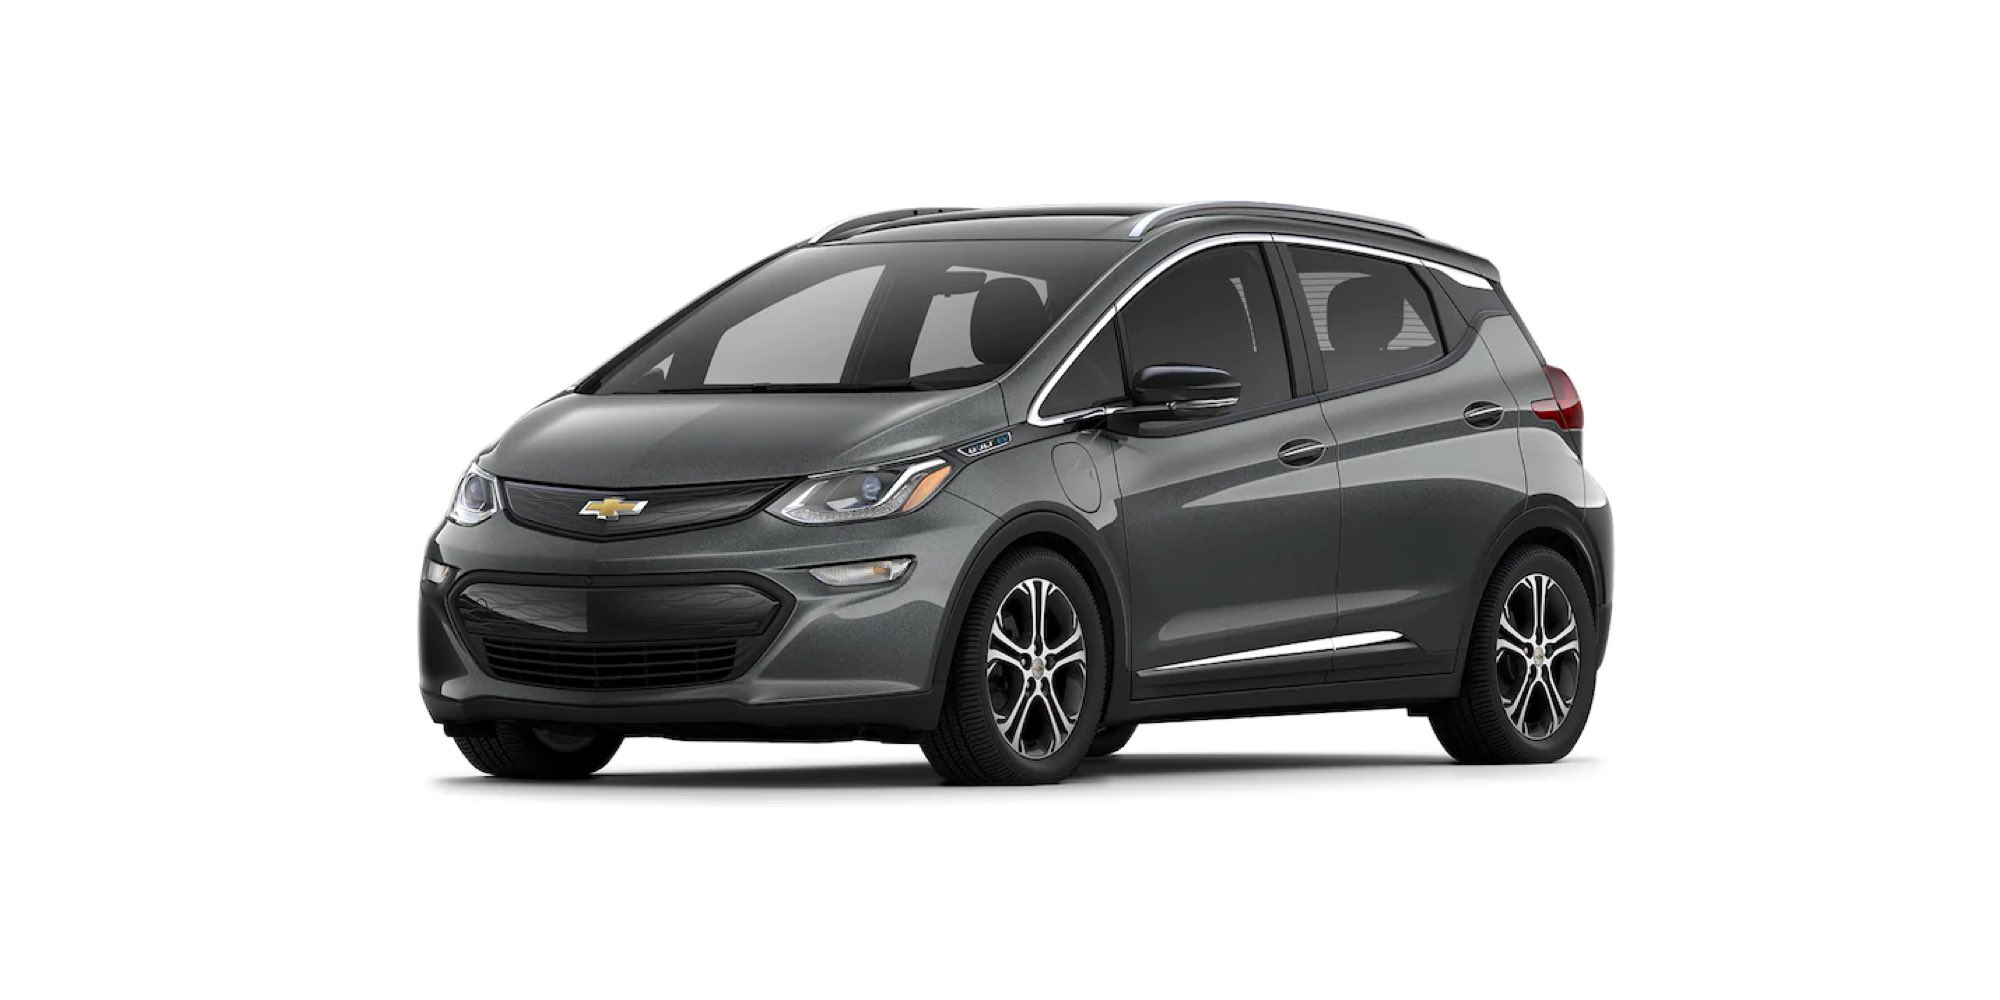 2021 Chevy Bolt EV in Nightfall GRAY METALLIC